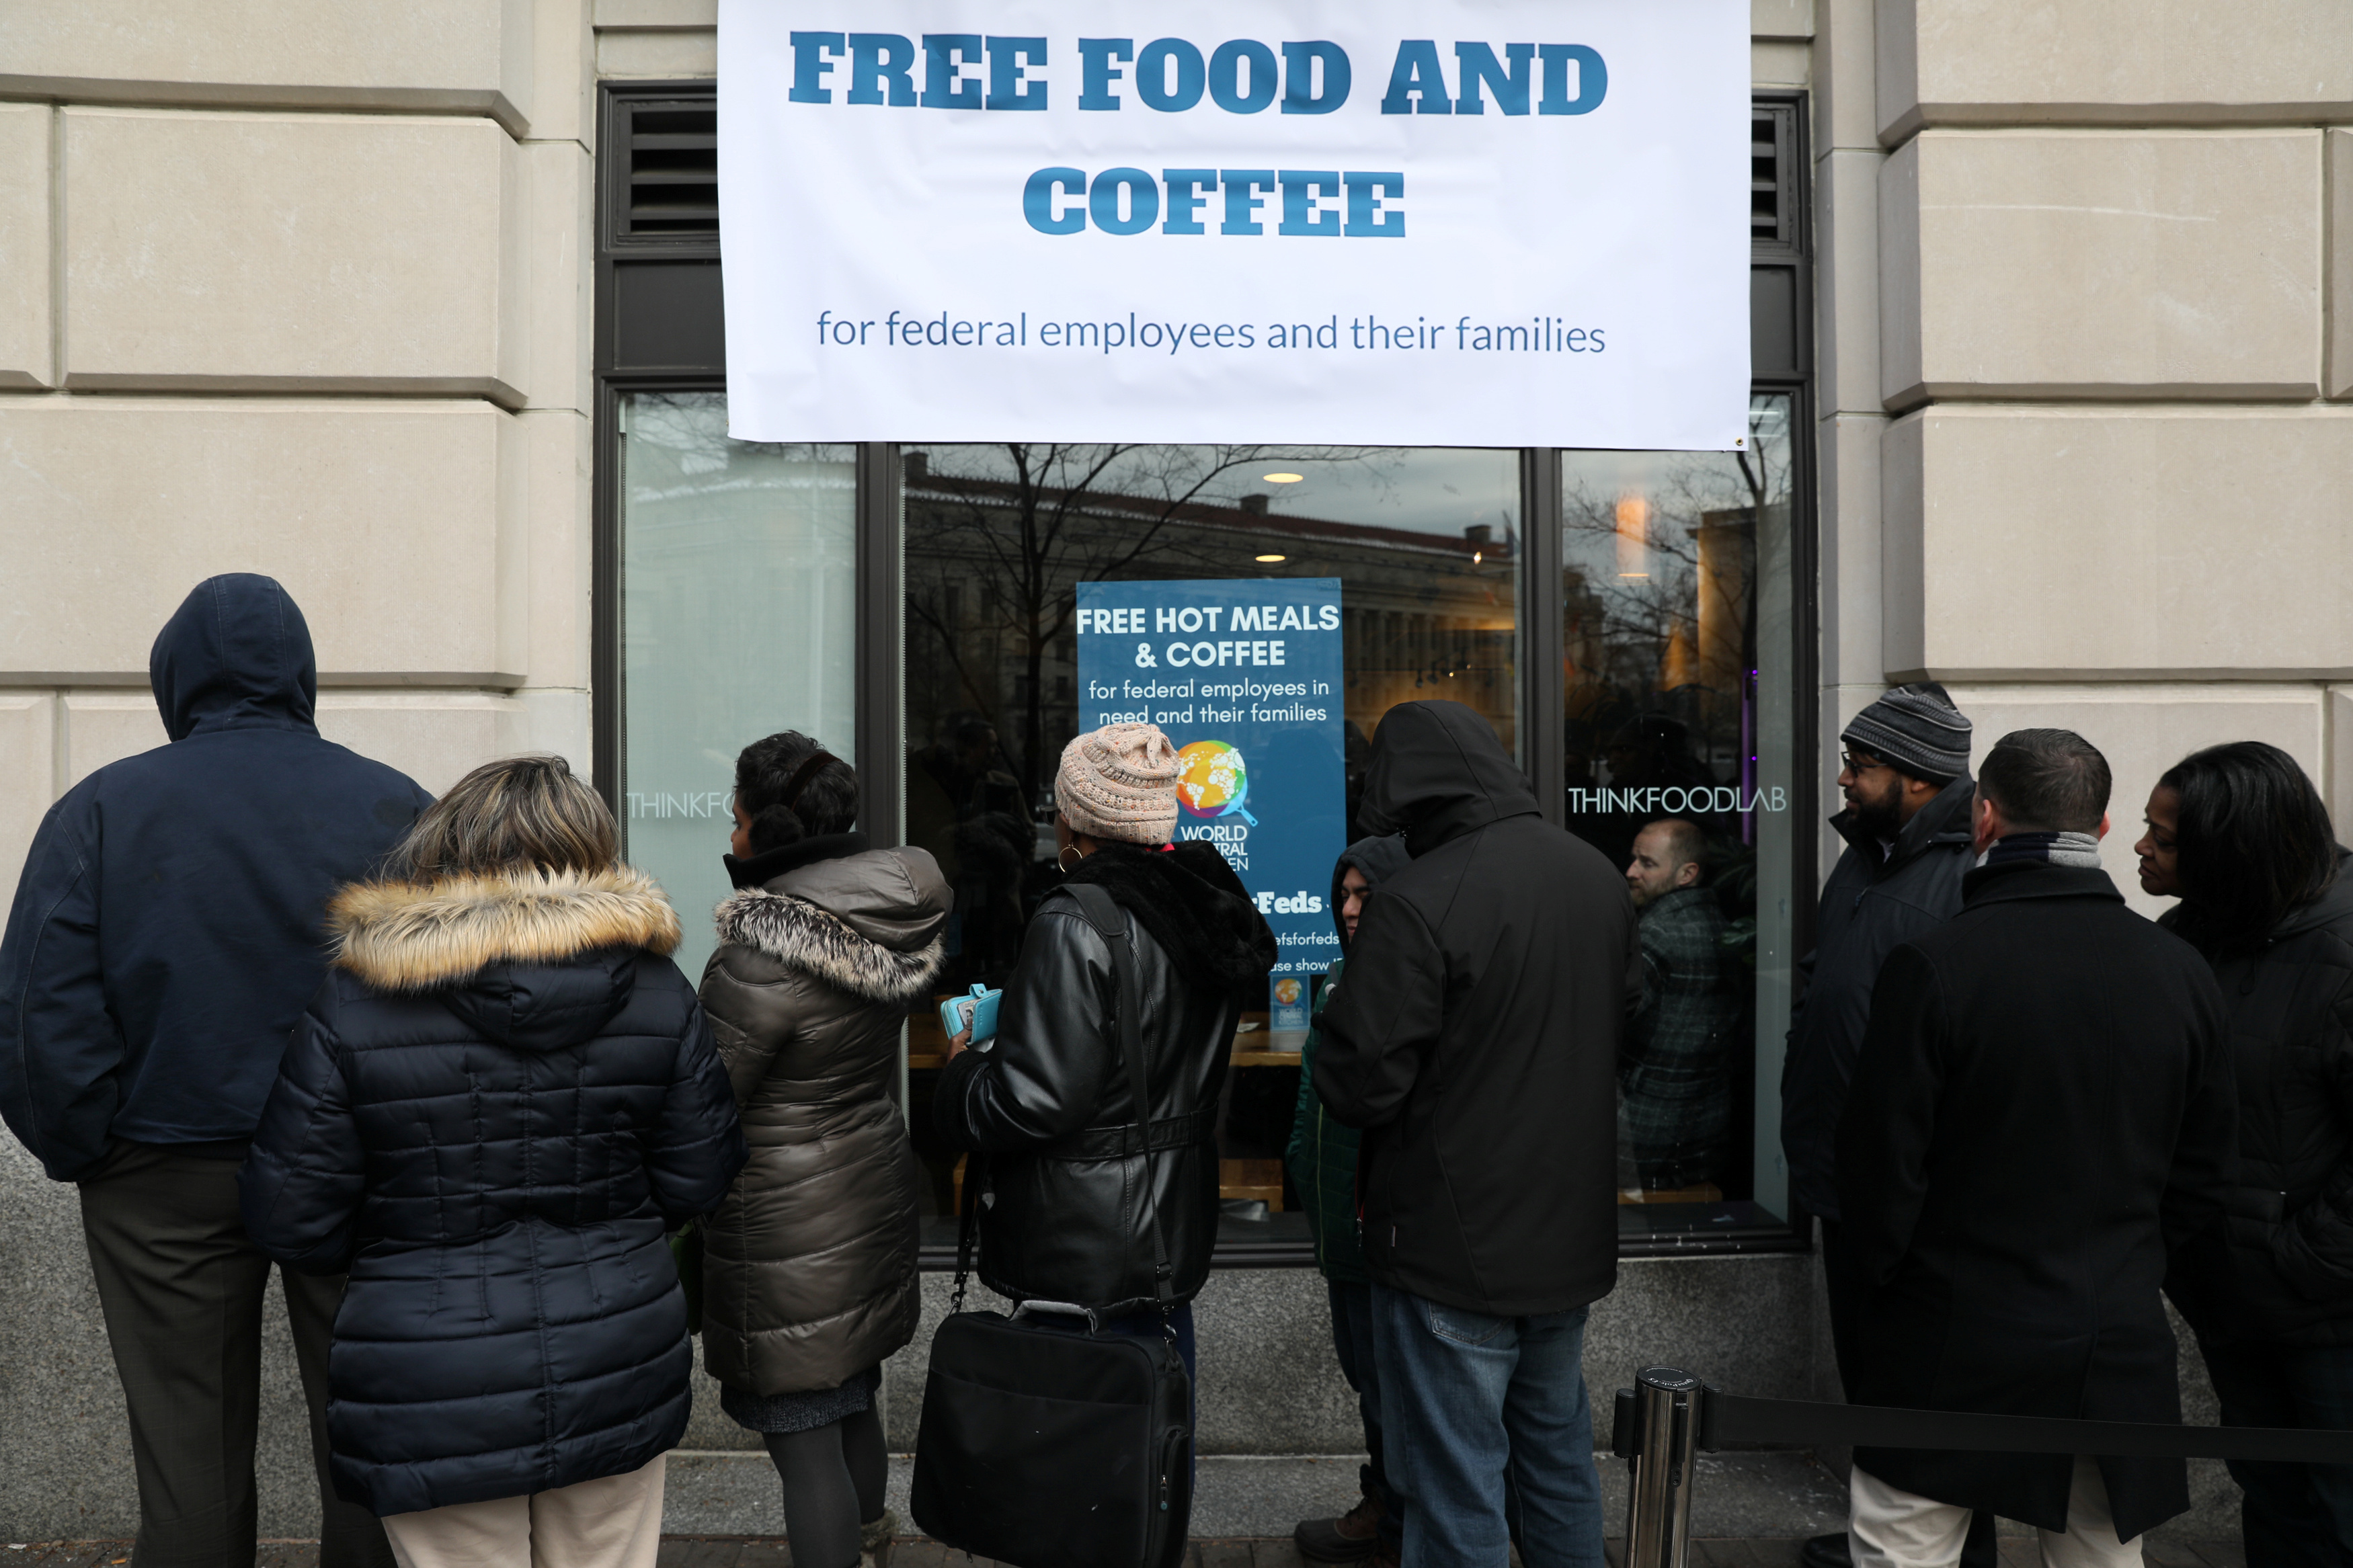 Federal workers left unpaid or furloughed by the extended partial government shutdown stand in line for fresh food and coffee at the World Central Kitchen, a volunteer emergency kitchen run by Chef Jose Andres, in Washington, U.S. January 16, 2019. REUTERS/Jonathan Ernst